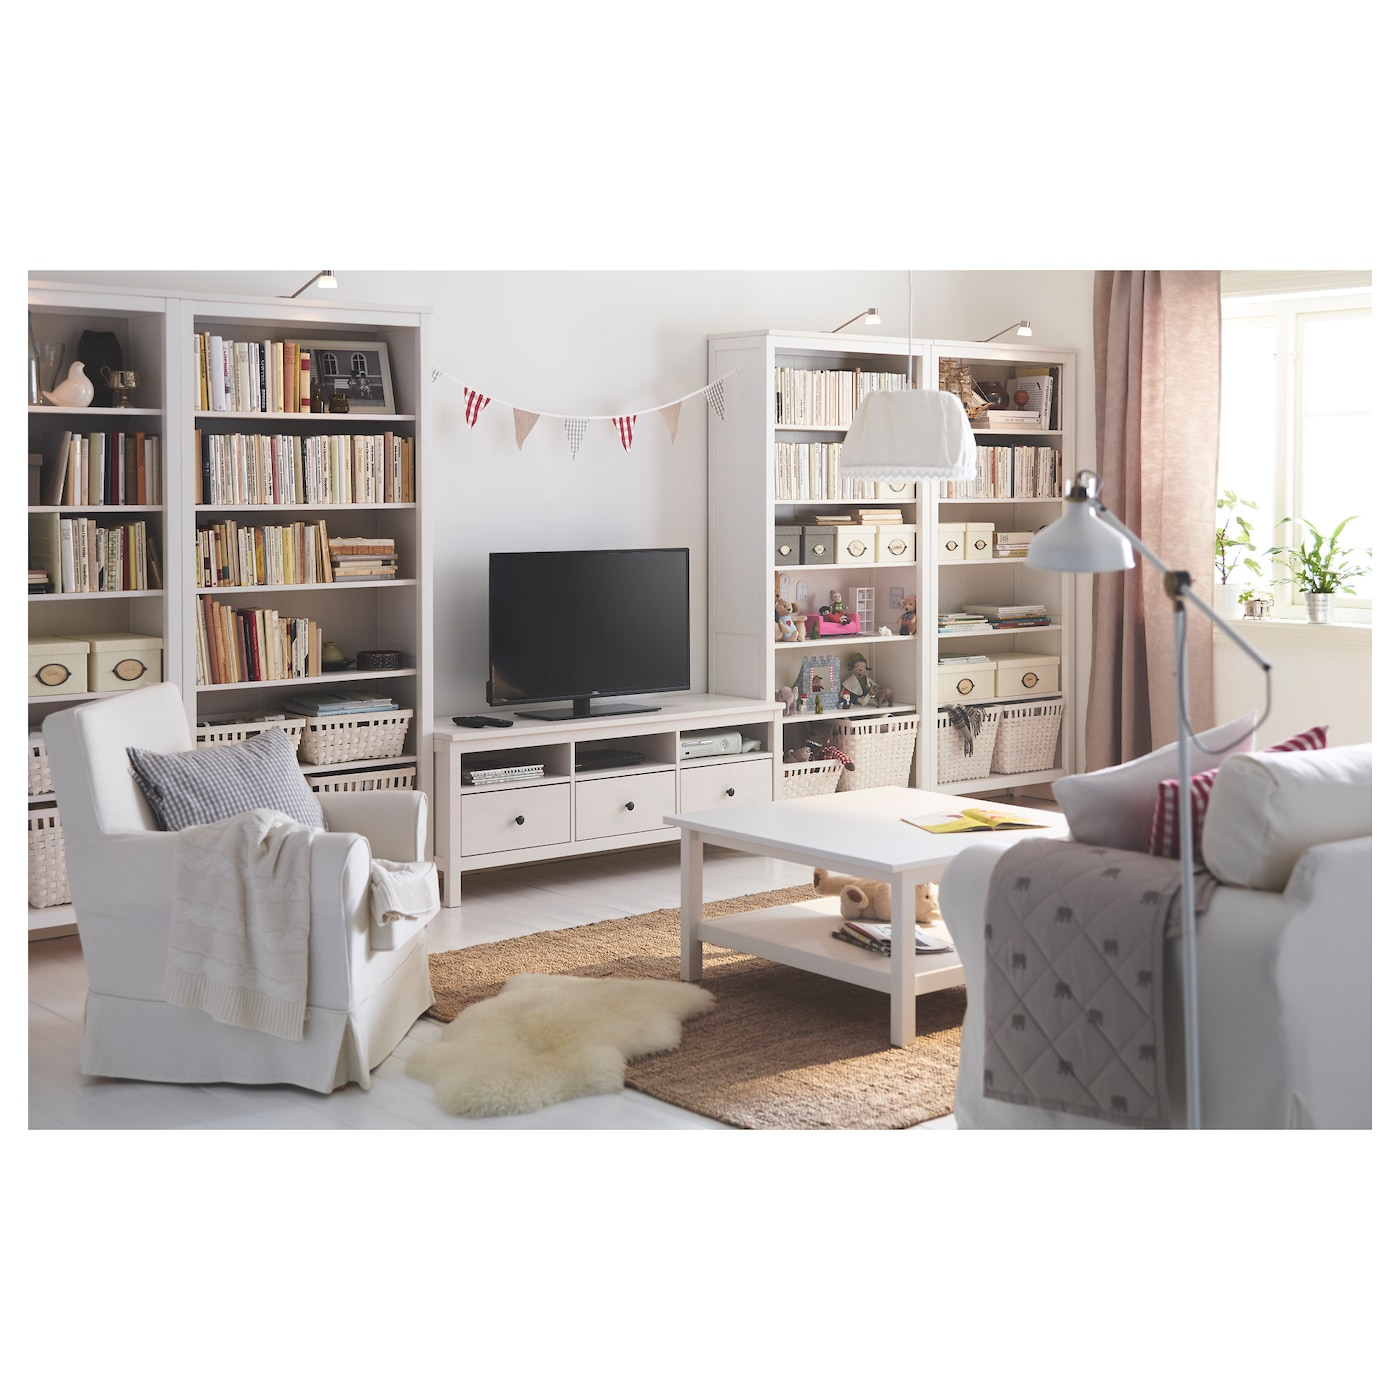 hemnes banc tv teint blanc 148x47 cm ikea. Black Bedroom Furniture Sets. Home Design Ideas